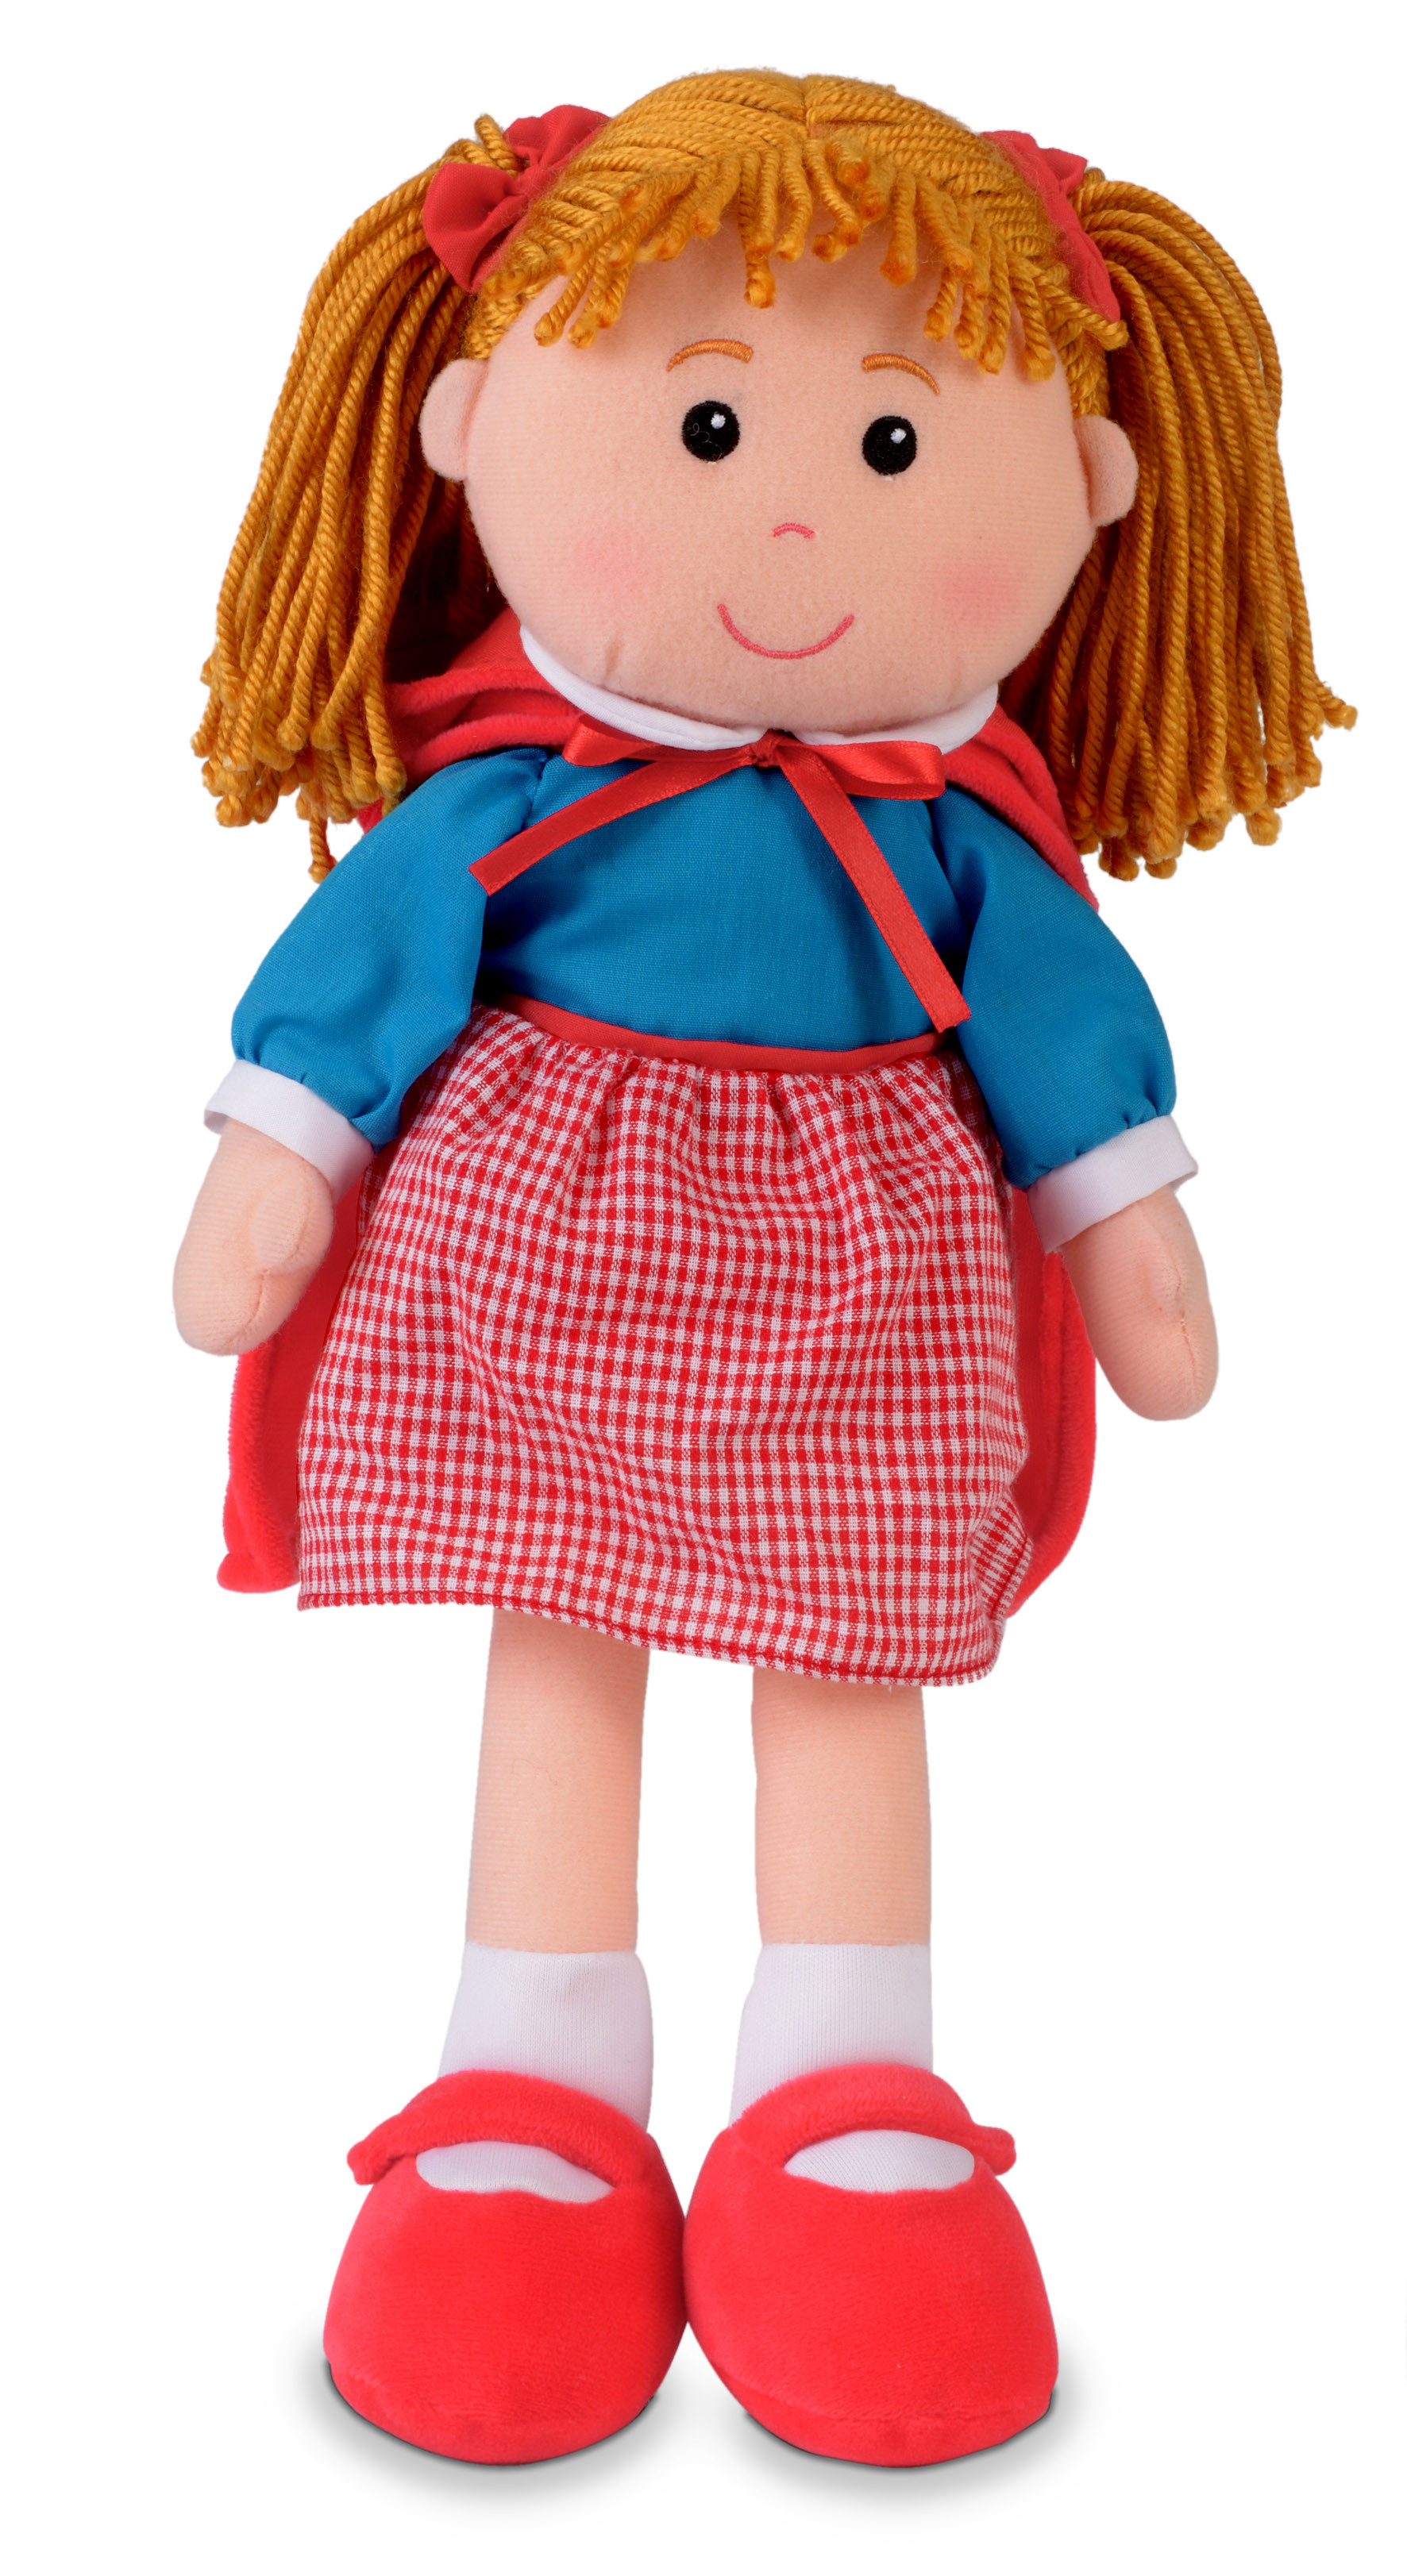 Childrens Little Red Riding Hood Rag Doll Dolly Soft Toy